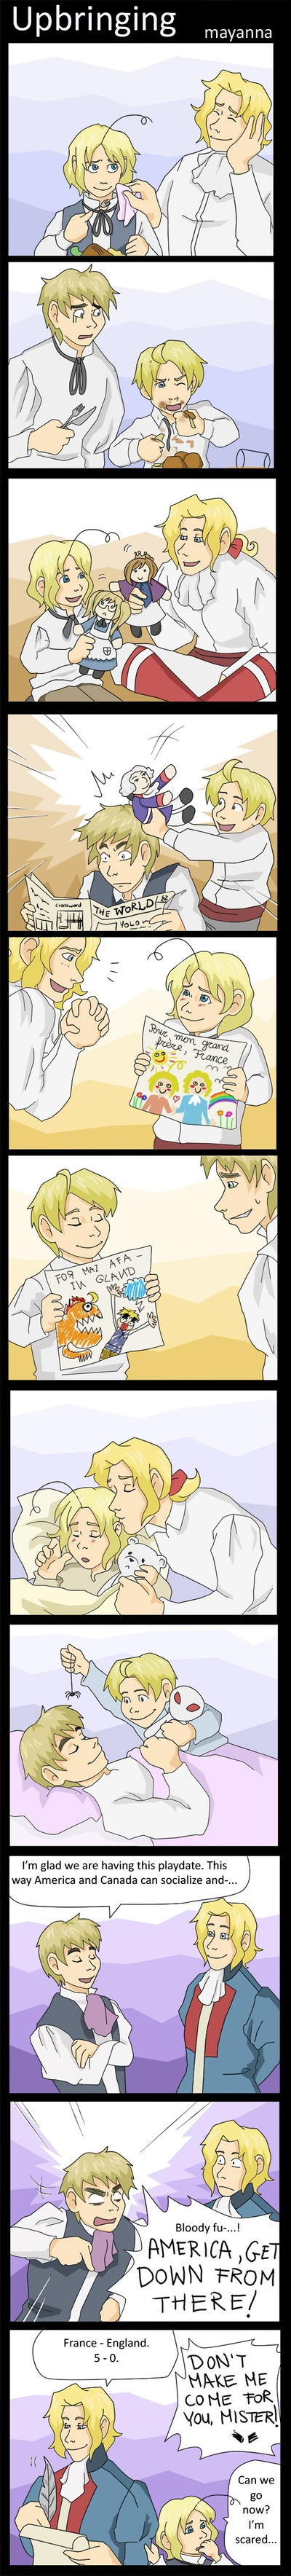 Hetalia: Upbringing by mayanna